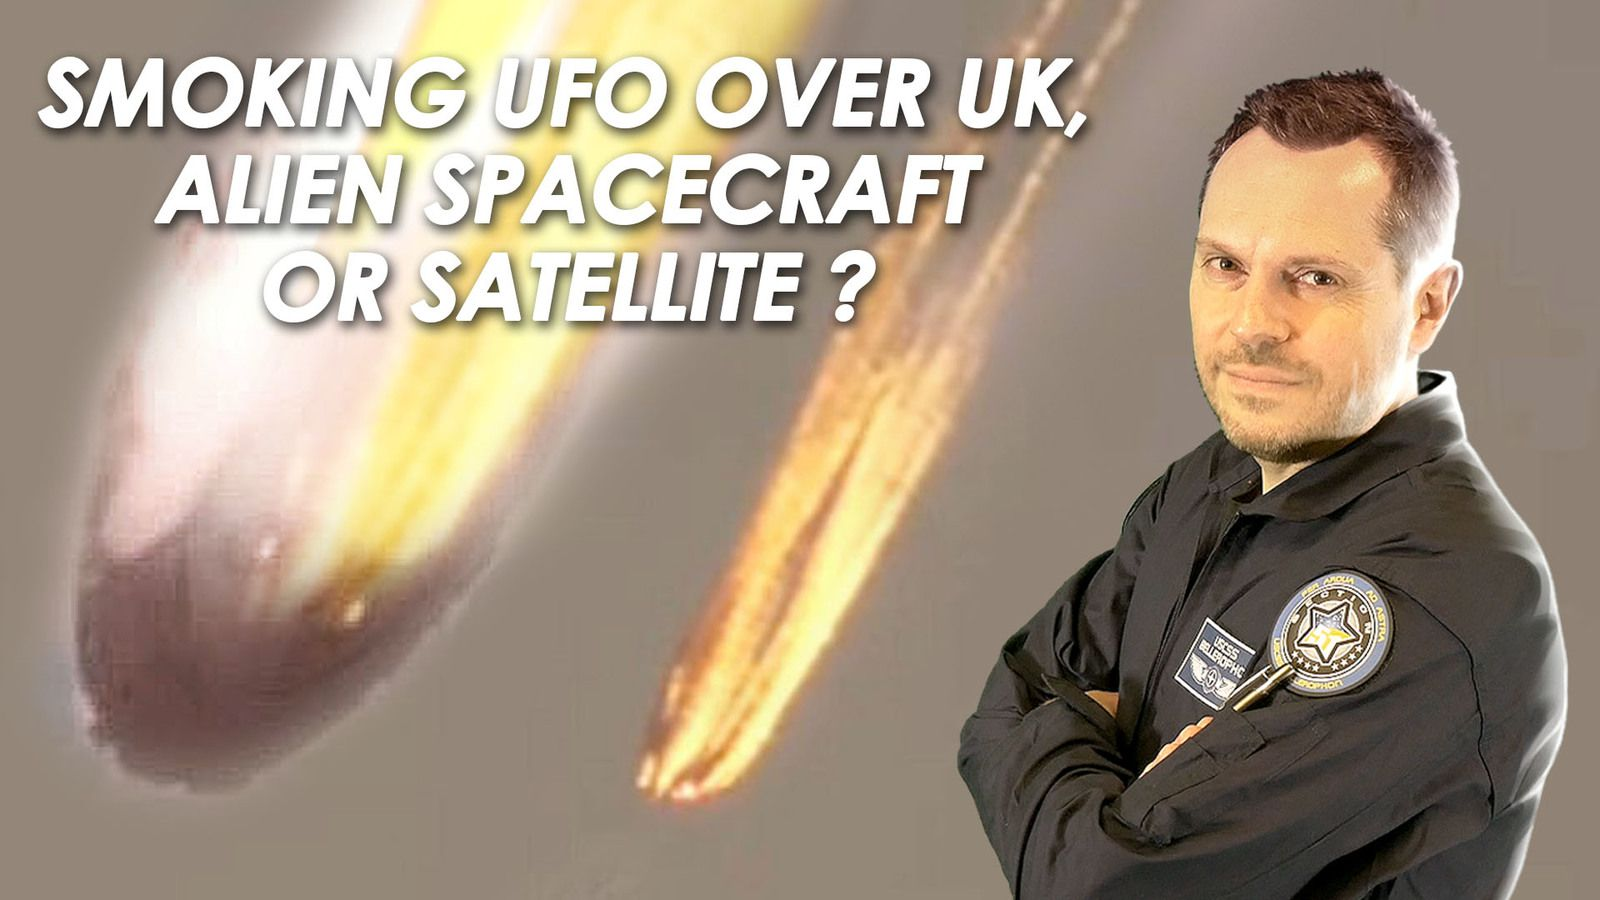 👽 Smoking UFO Spotted in Freefall over UK - Alien Spacecraft or Satellite ?